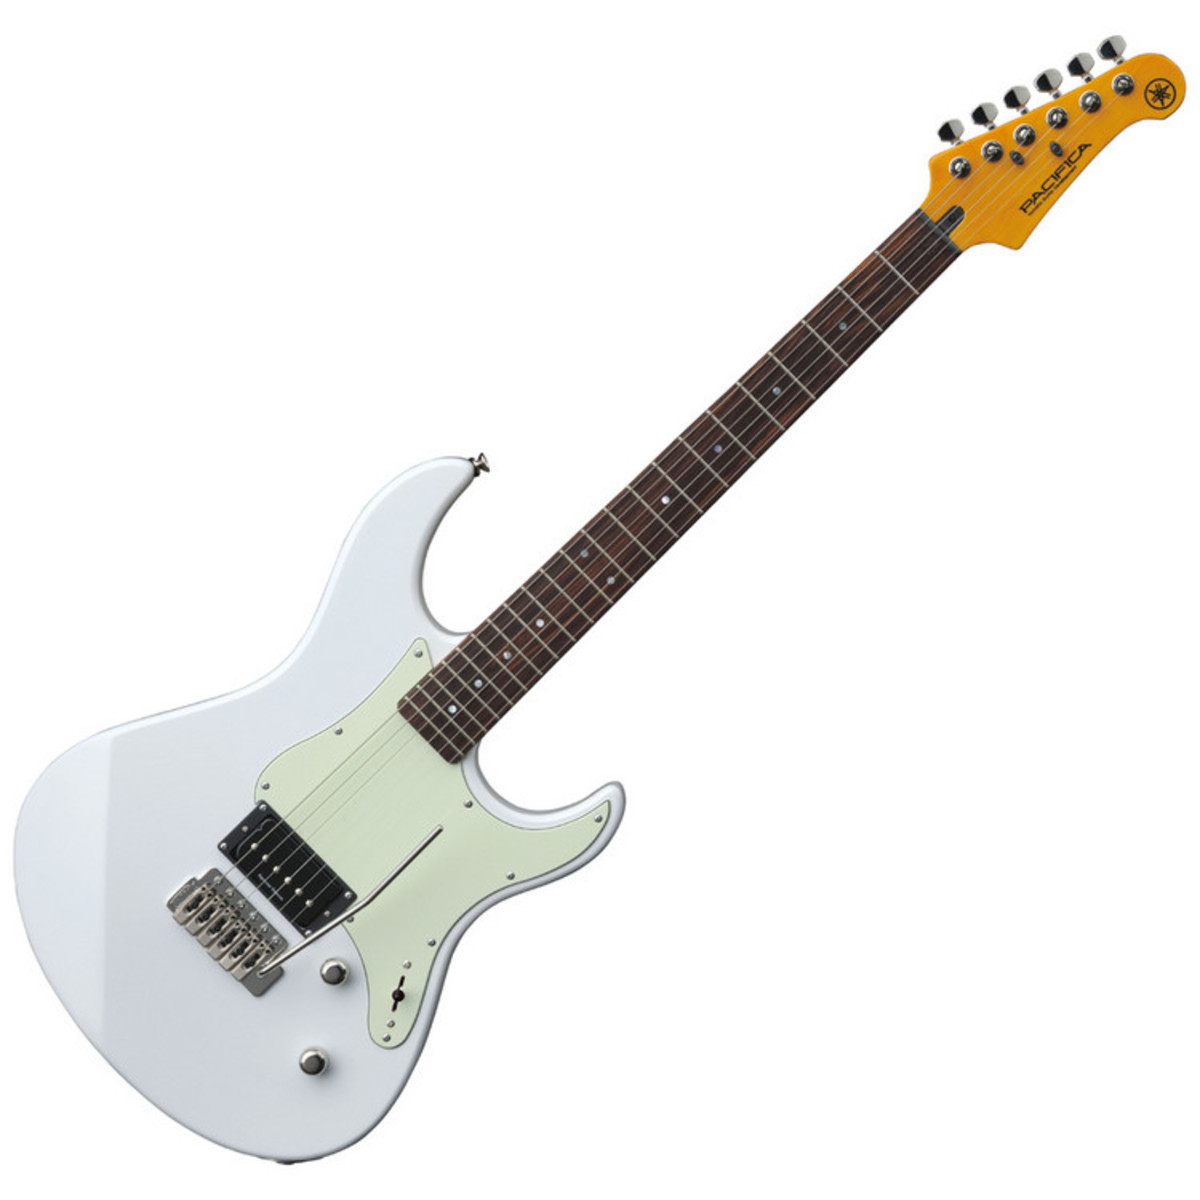 yamaha pacifica 510v electric guitar white at. Black Bedroom Furniture Sets. Home Design Ideas